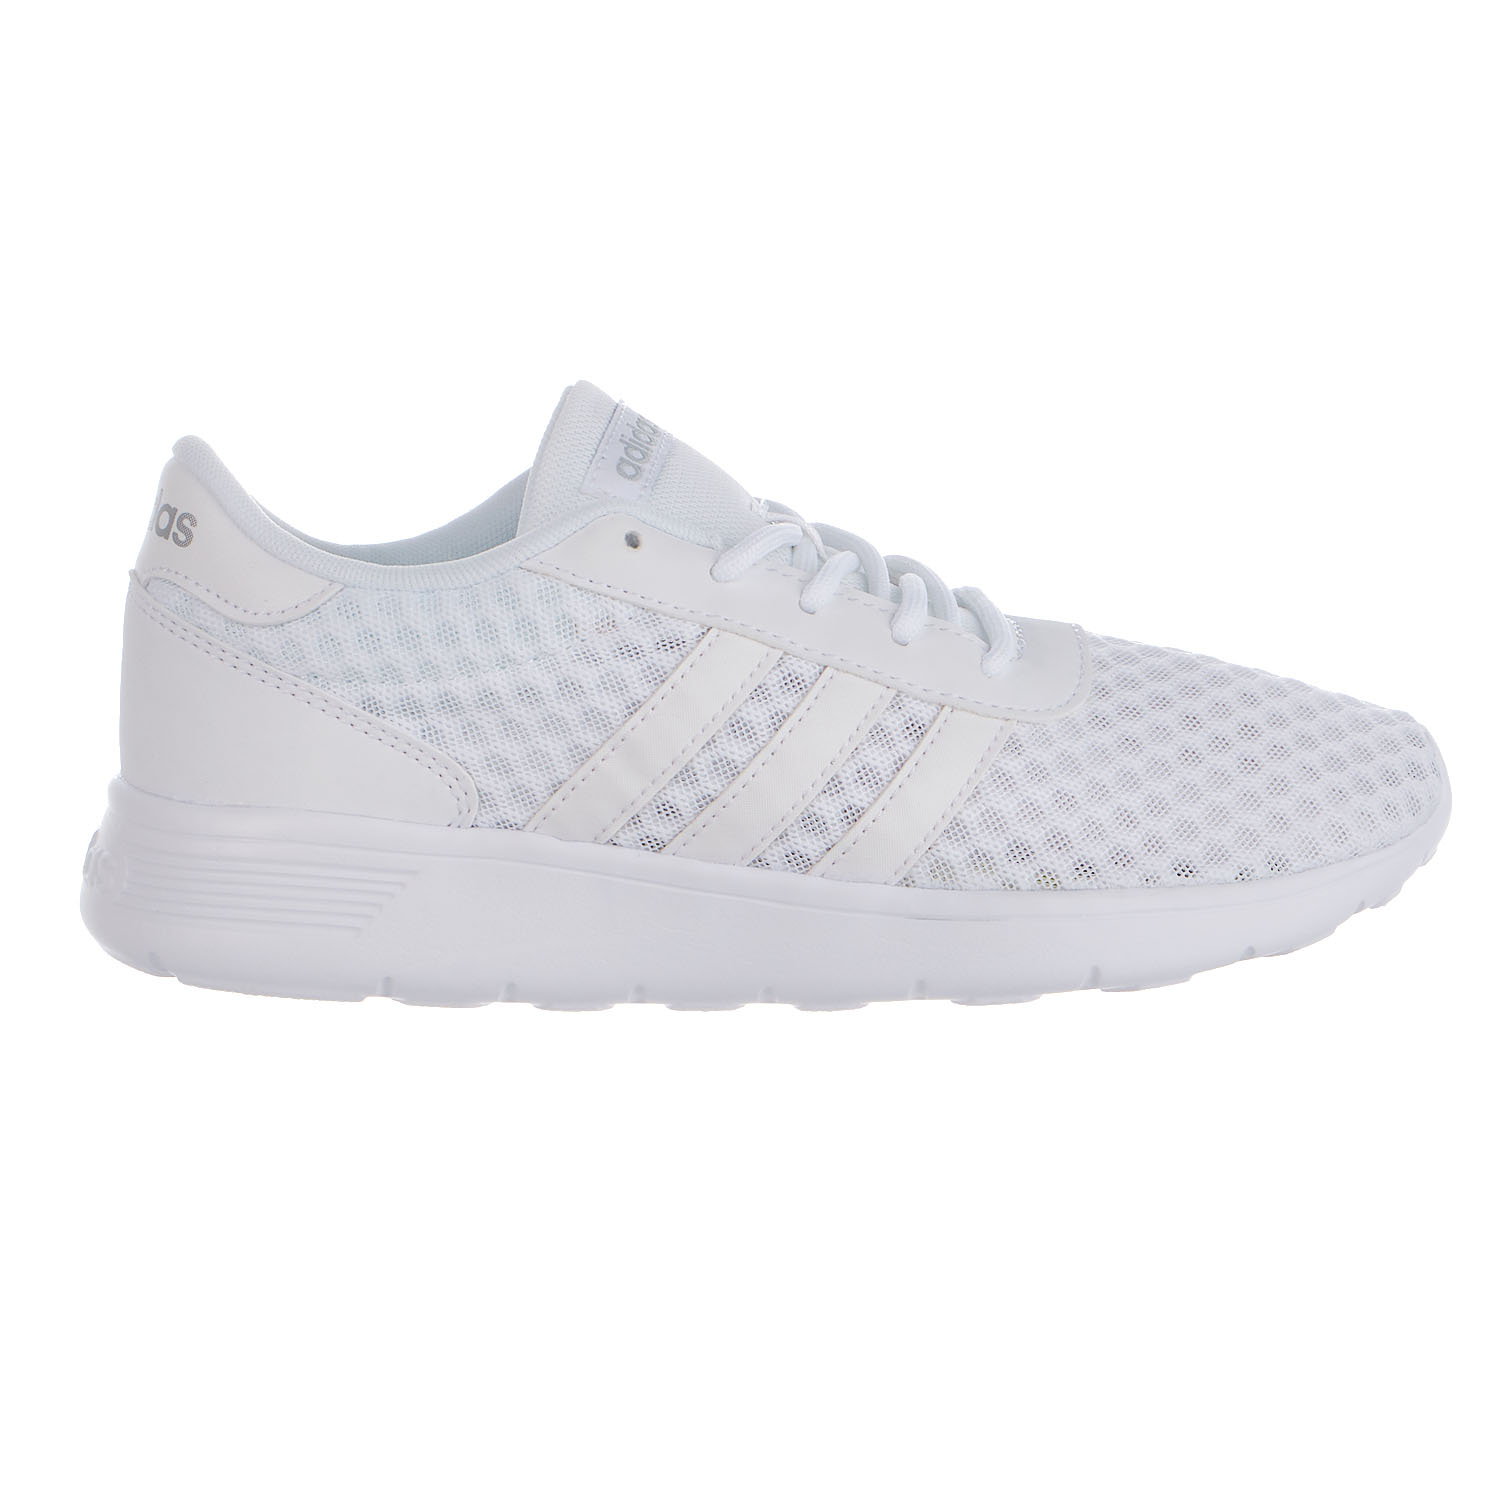 Adidas Lite Racer Shoes Womens by Adidas